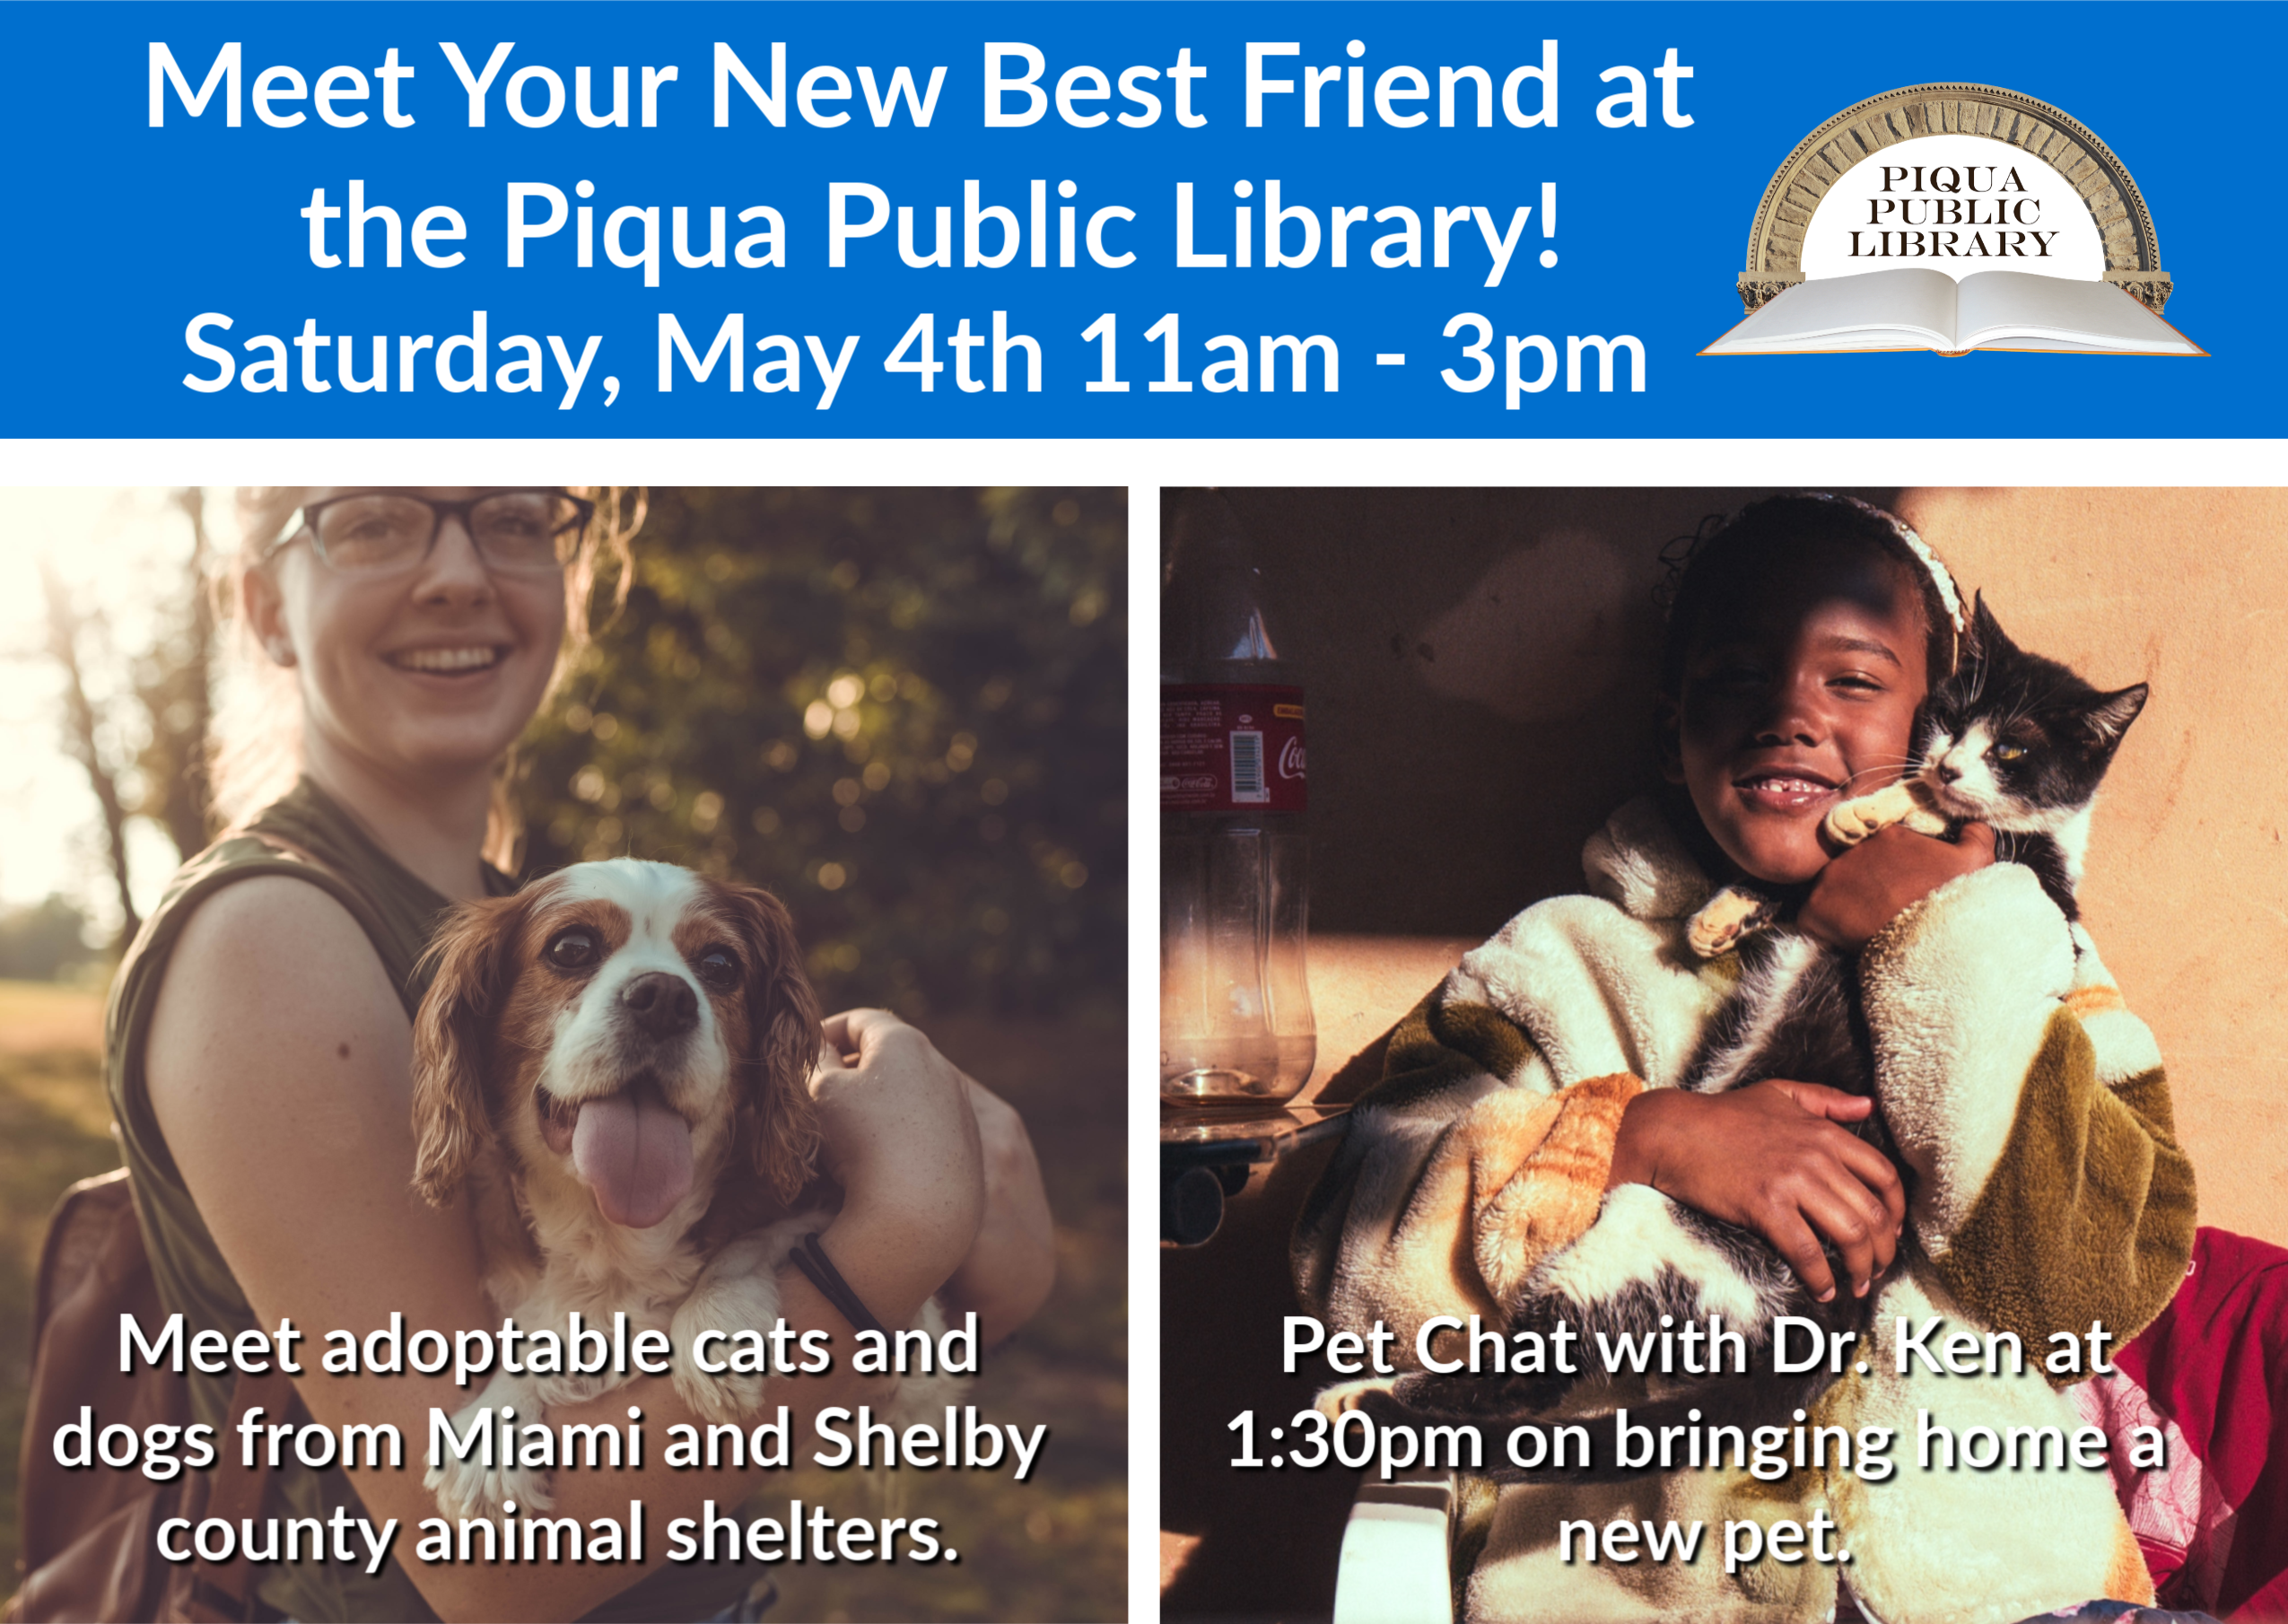 Meet Your New Best Friend Meet And Greet With Adoptable Cats And Dogs From Miami County At The Piqua Public Library From Public Library Piqua Cat Adoption